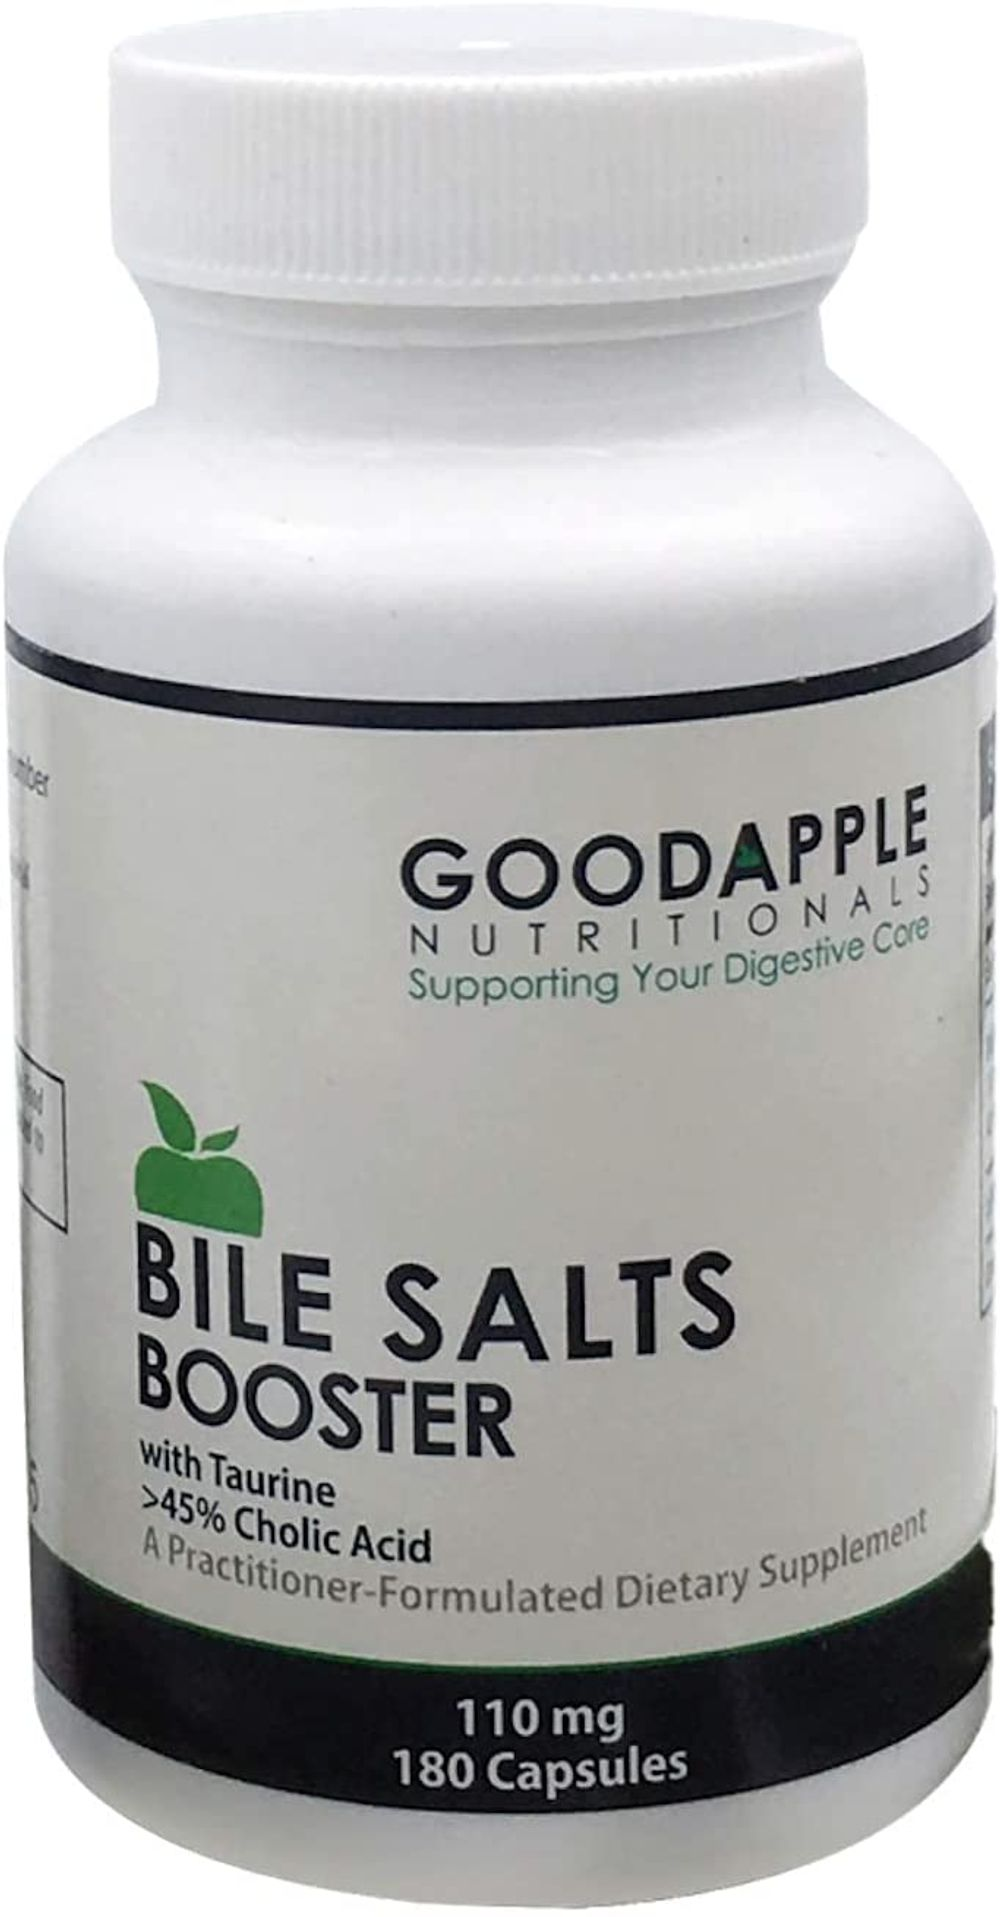 Bile Salts Booster for Gallbladder and No Gallbladder|Aids in Nutrient Absorption including Fat-Soluble Vitamins|Supports Gas & Bloating|Ox Bile Salts & Taurine|180 capsules|110mg|